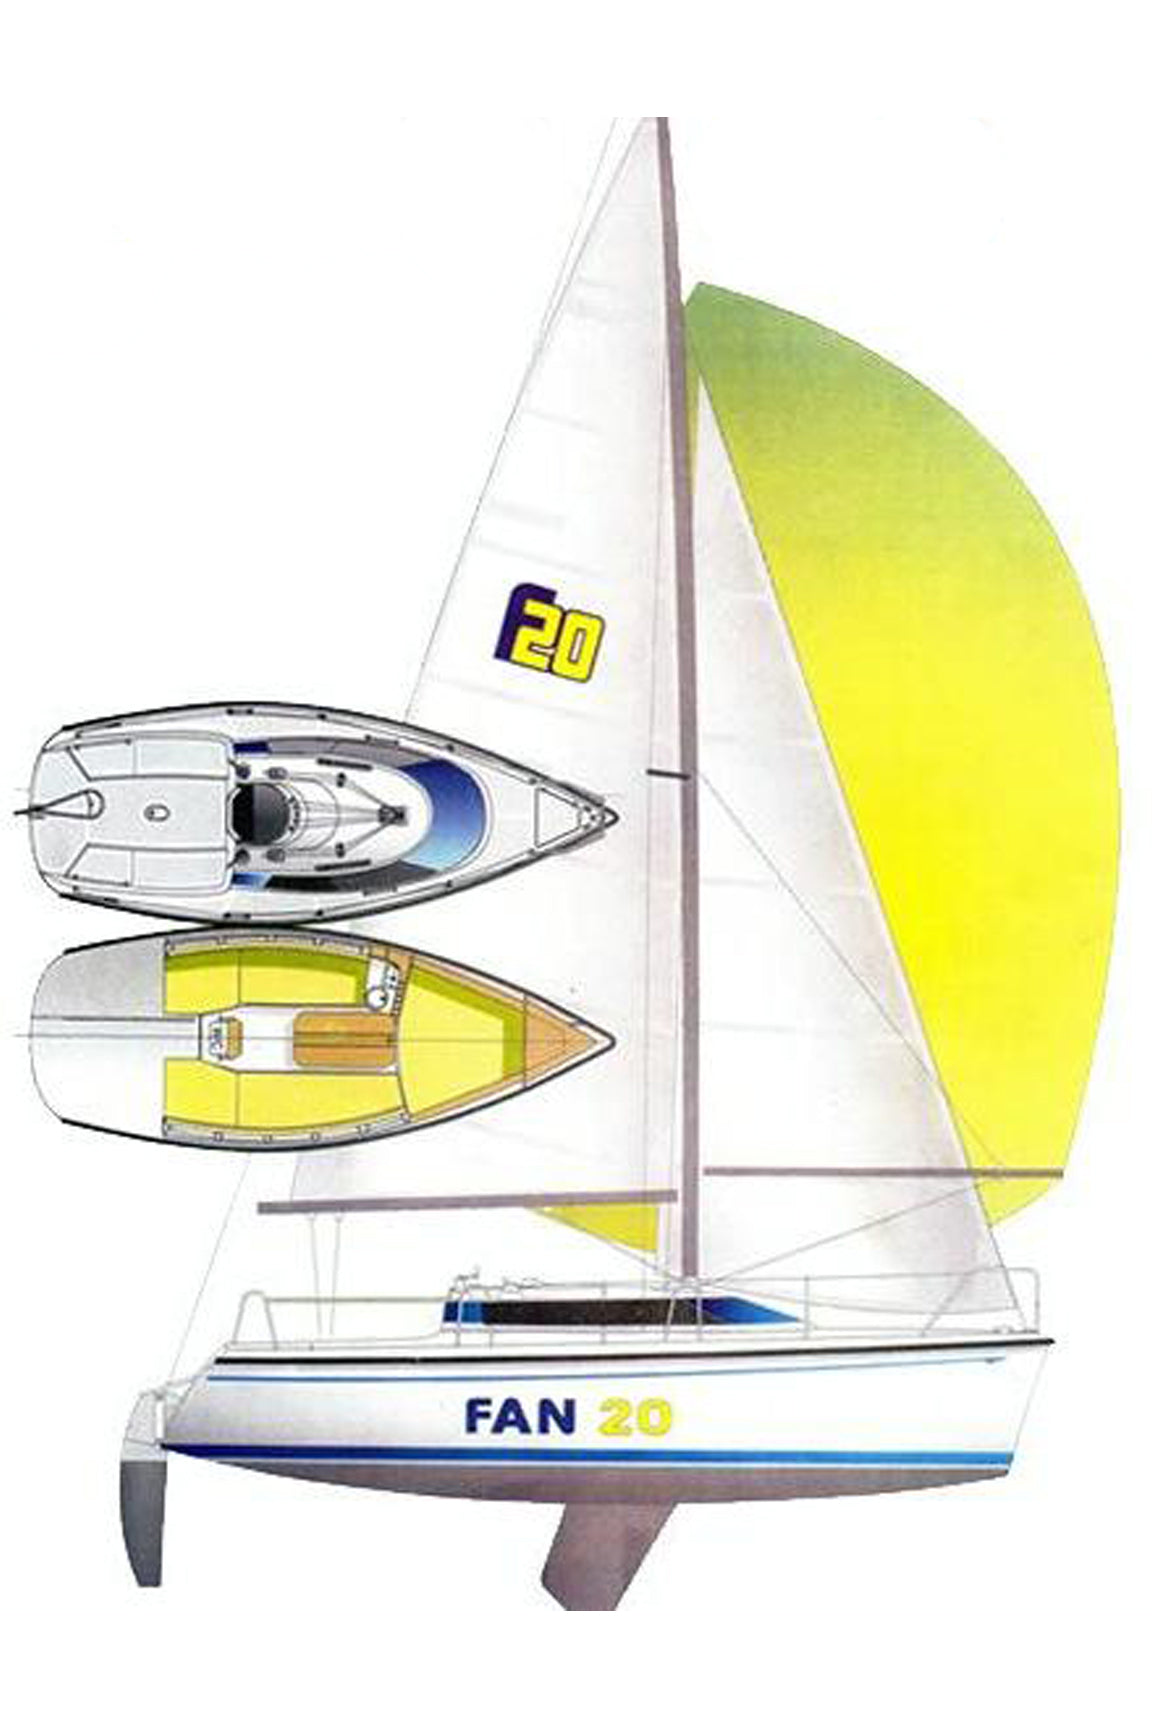 FAN 20 | Inter Yacht West